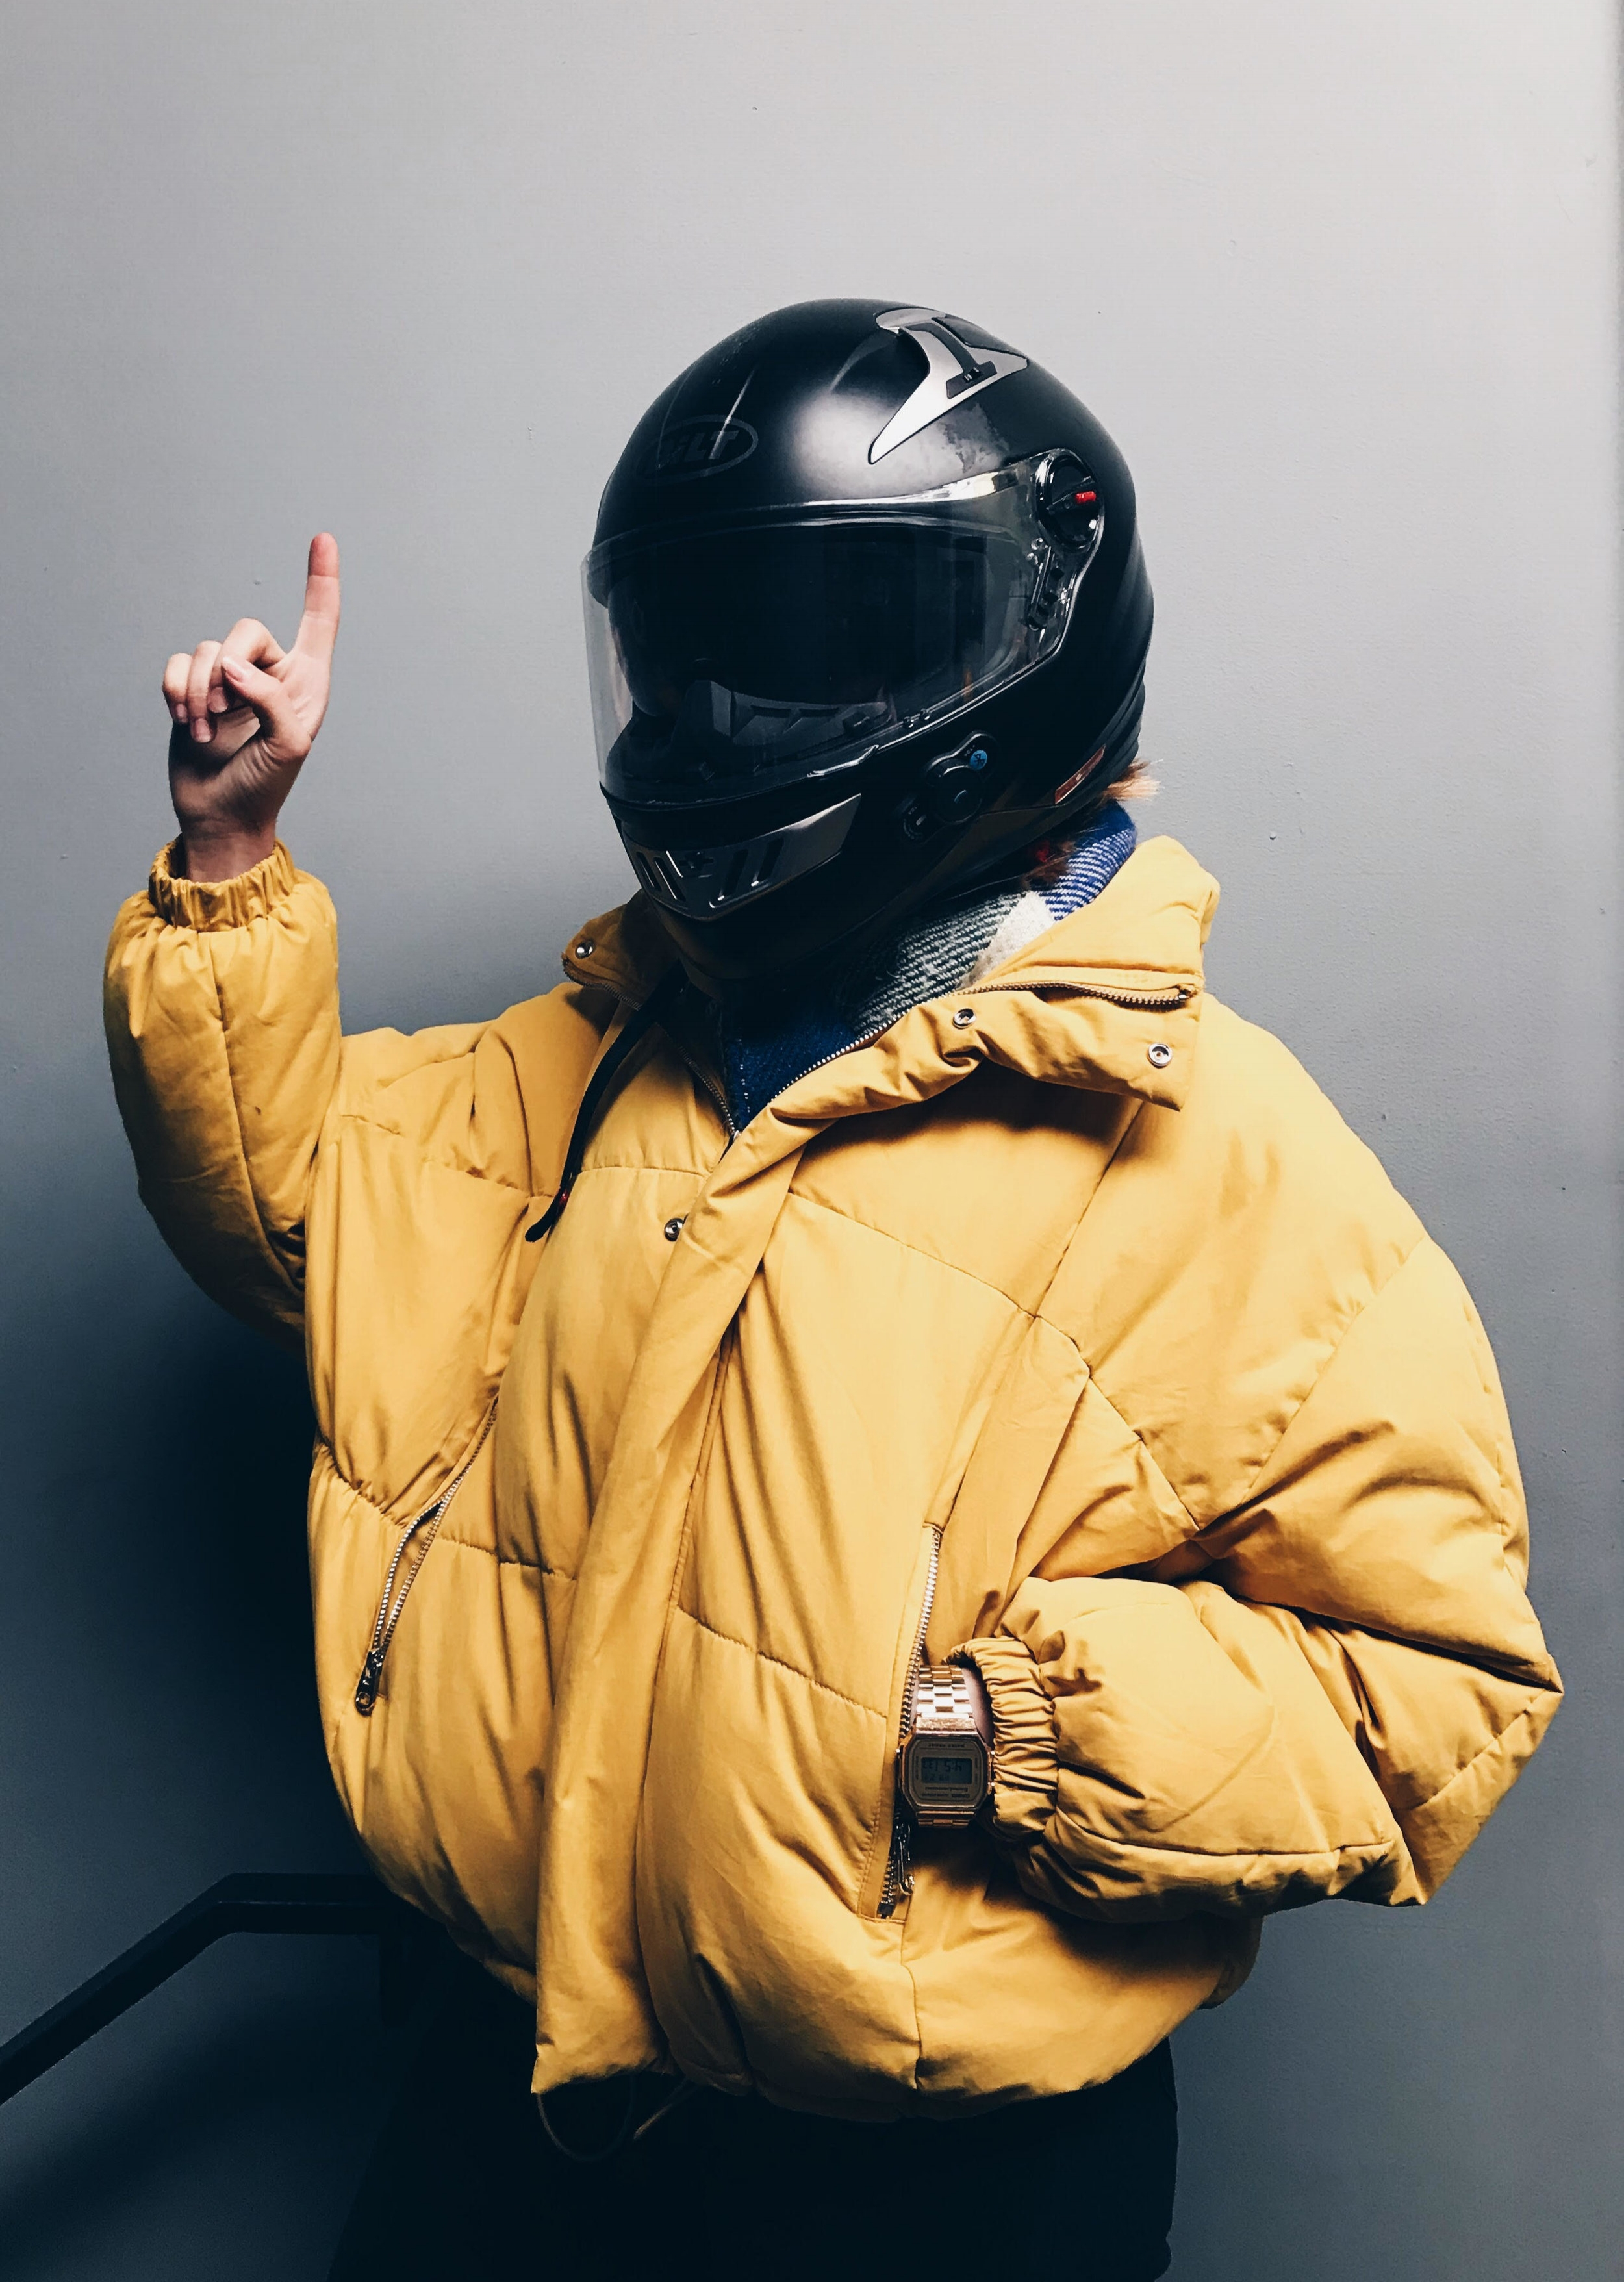 this is me - This is mostly how I look like on not so warm but sunny days. Being one with my yellow jacket and my helmet, hopping-off of my Honda Rebel 250. Just another day keeping my aesthetic bold and wild. Essentials are essentials. Let's get into detail...